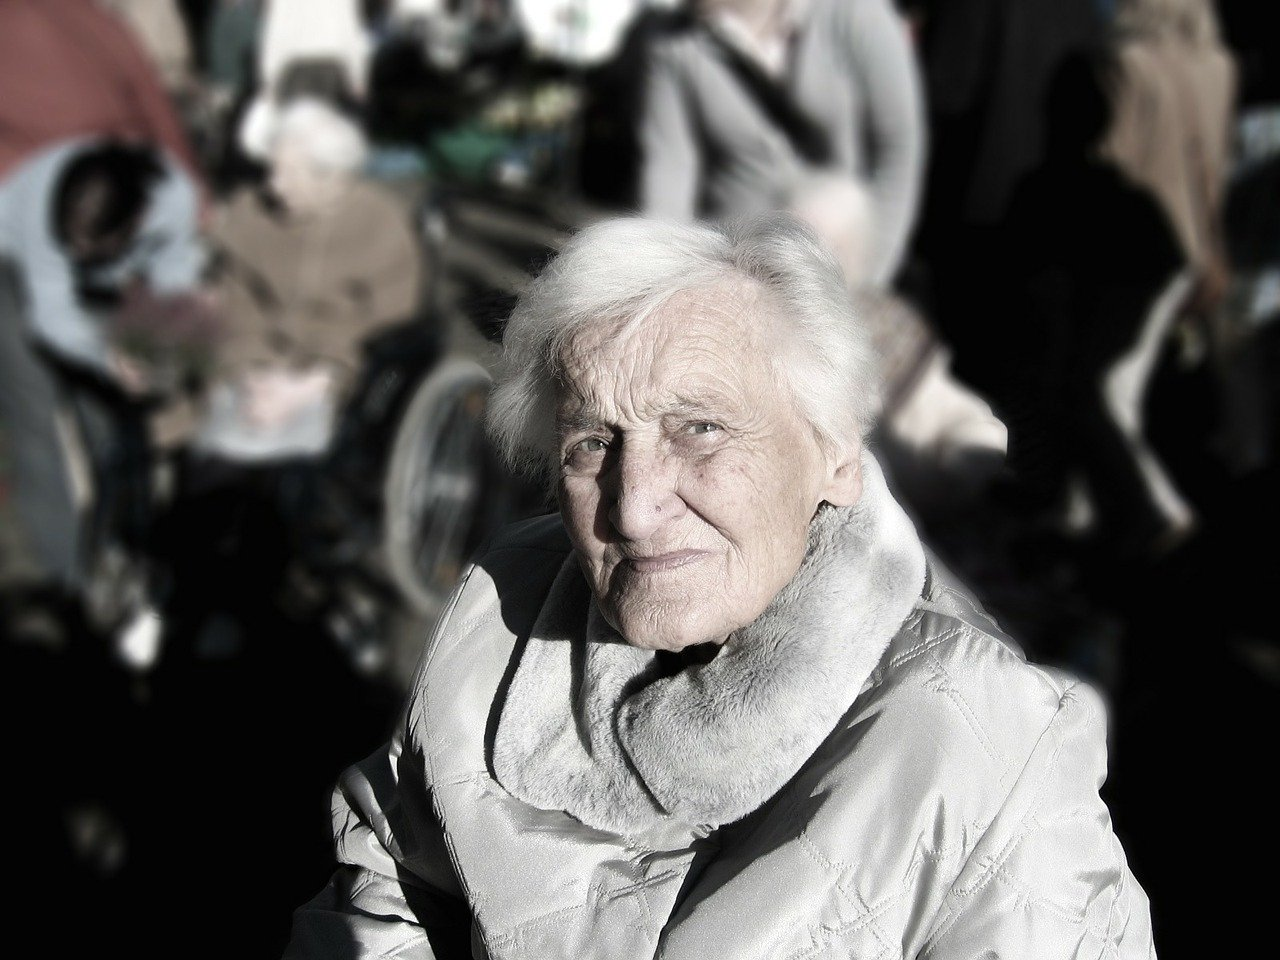 COVID lessons for the future of aged care